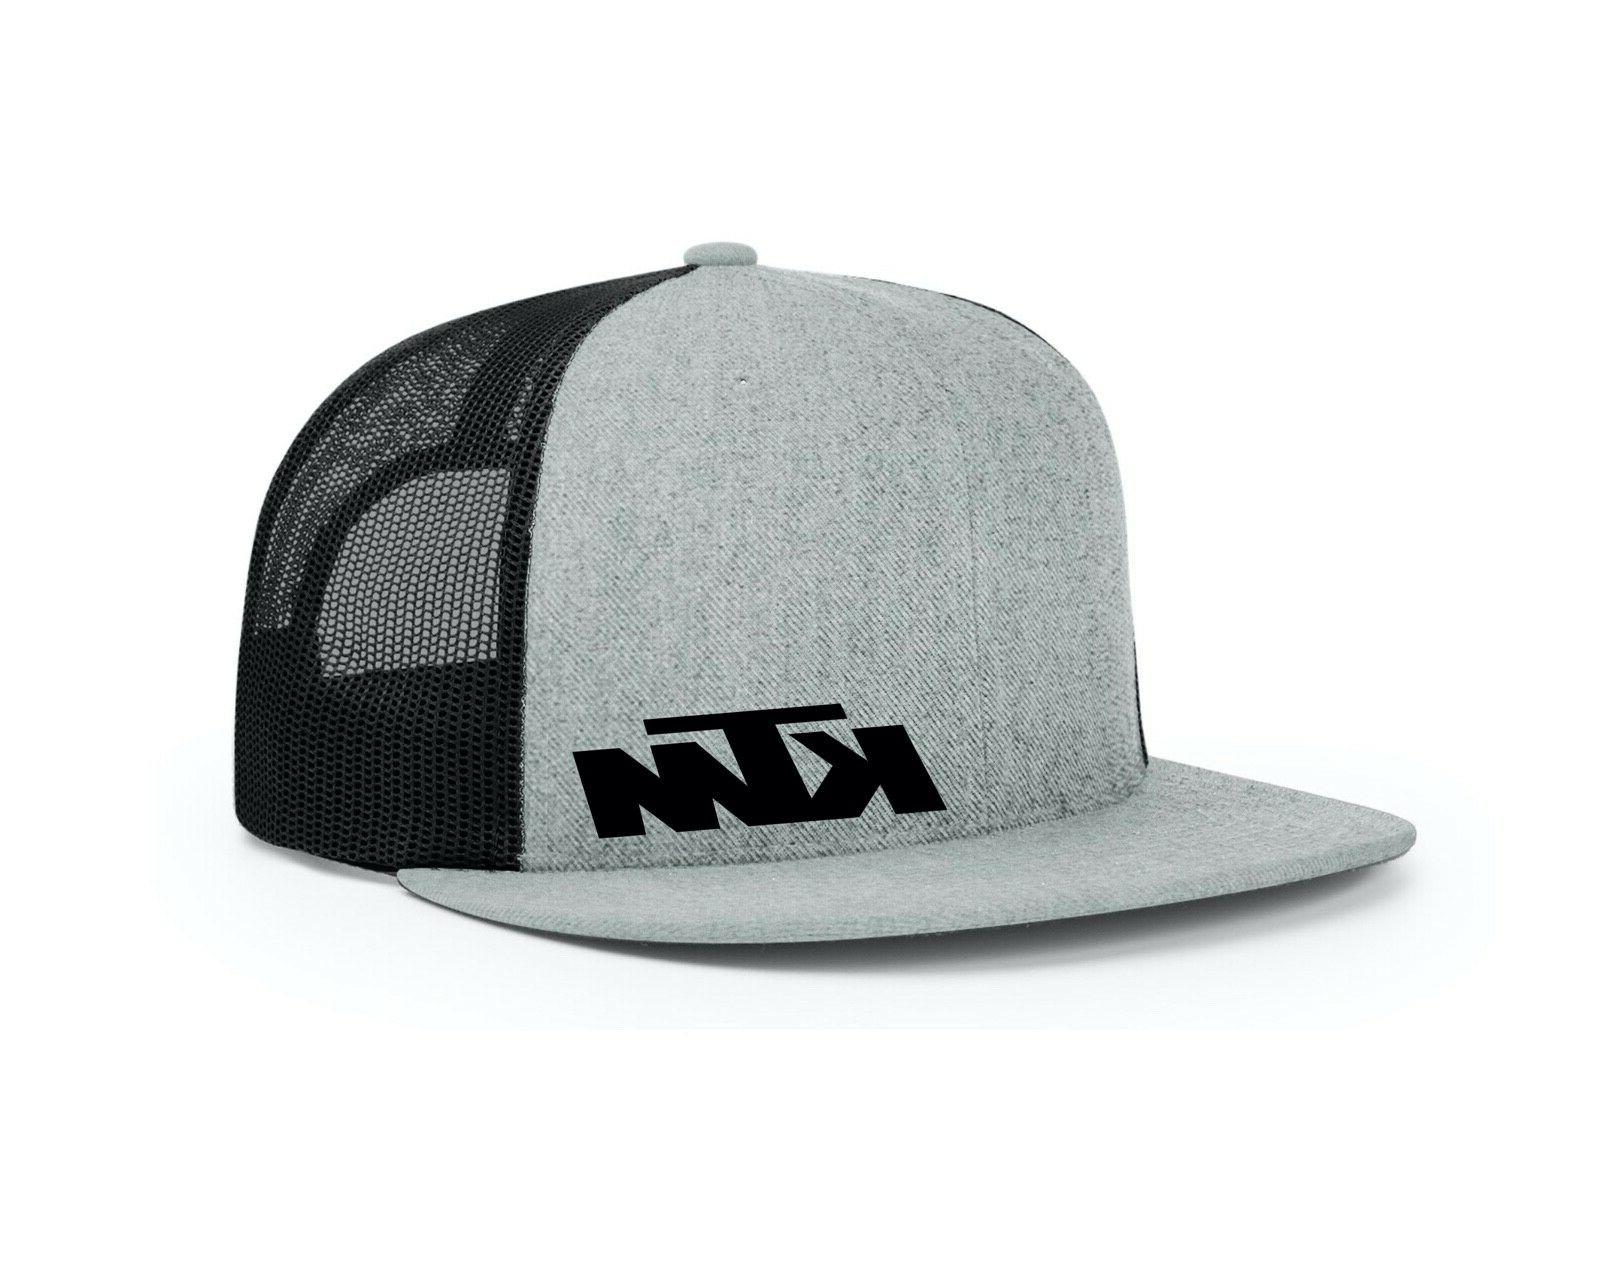 ktm 511 flat bill snapback trucker hat